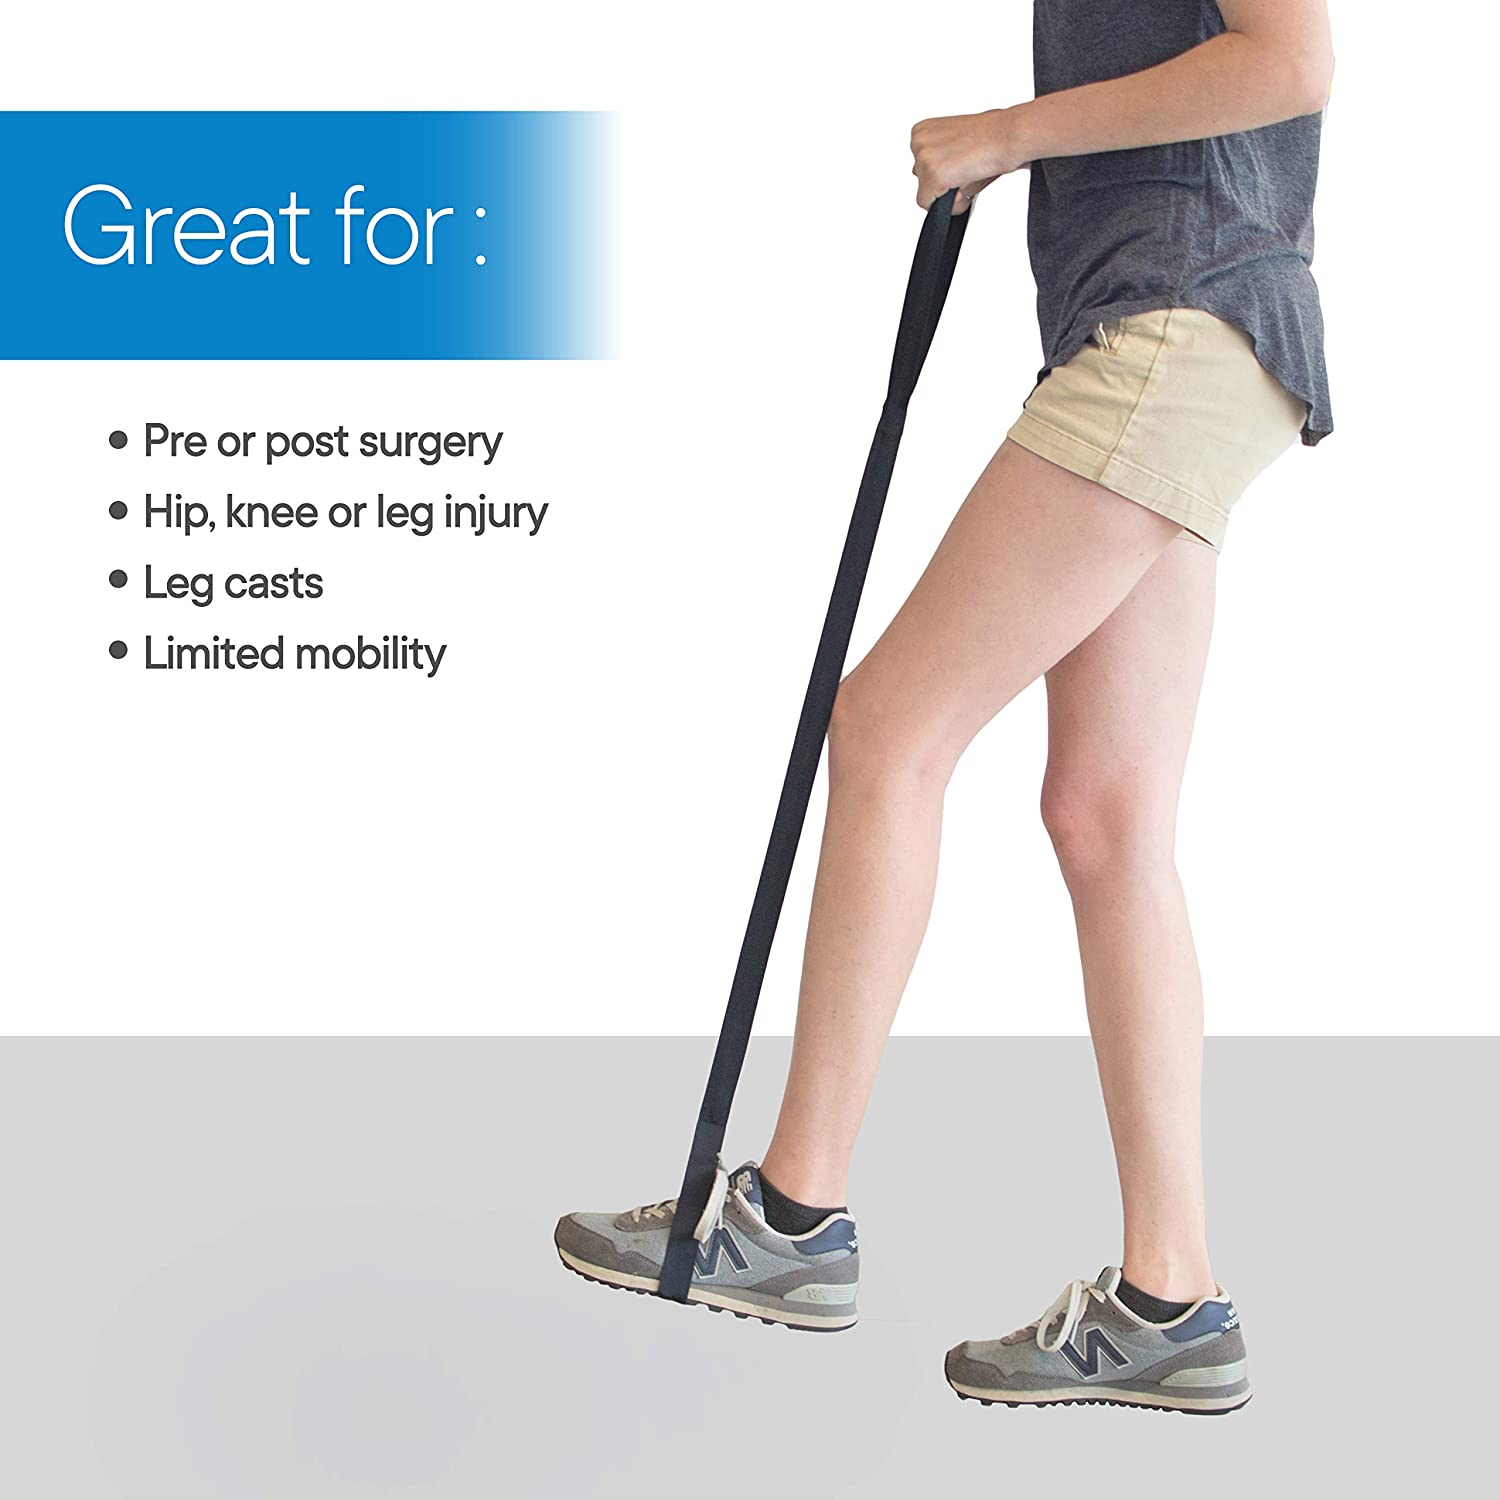 RMS 42 Inch Long Leg Lifter - Durable & Rigid Hand Strap & Foot Loop - Ideal Mobility Tool for Wheelchair, Hip & Knee Replacement Surgery (42 Inch Long): Health & Personal Care